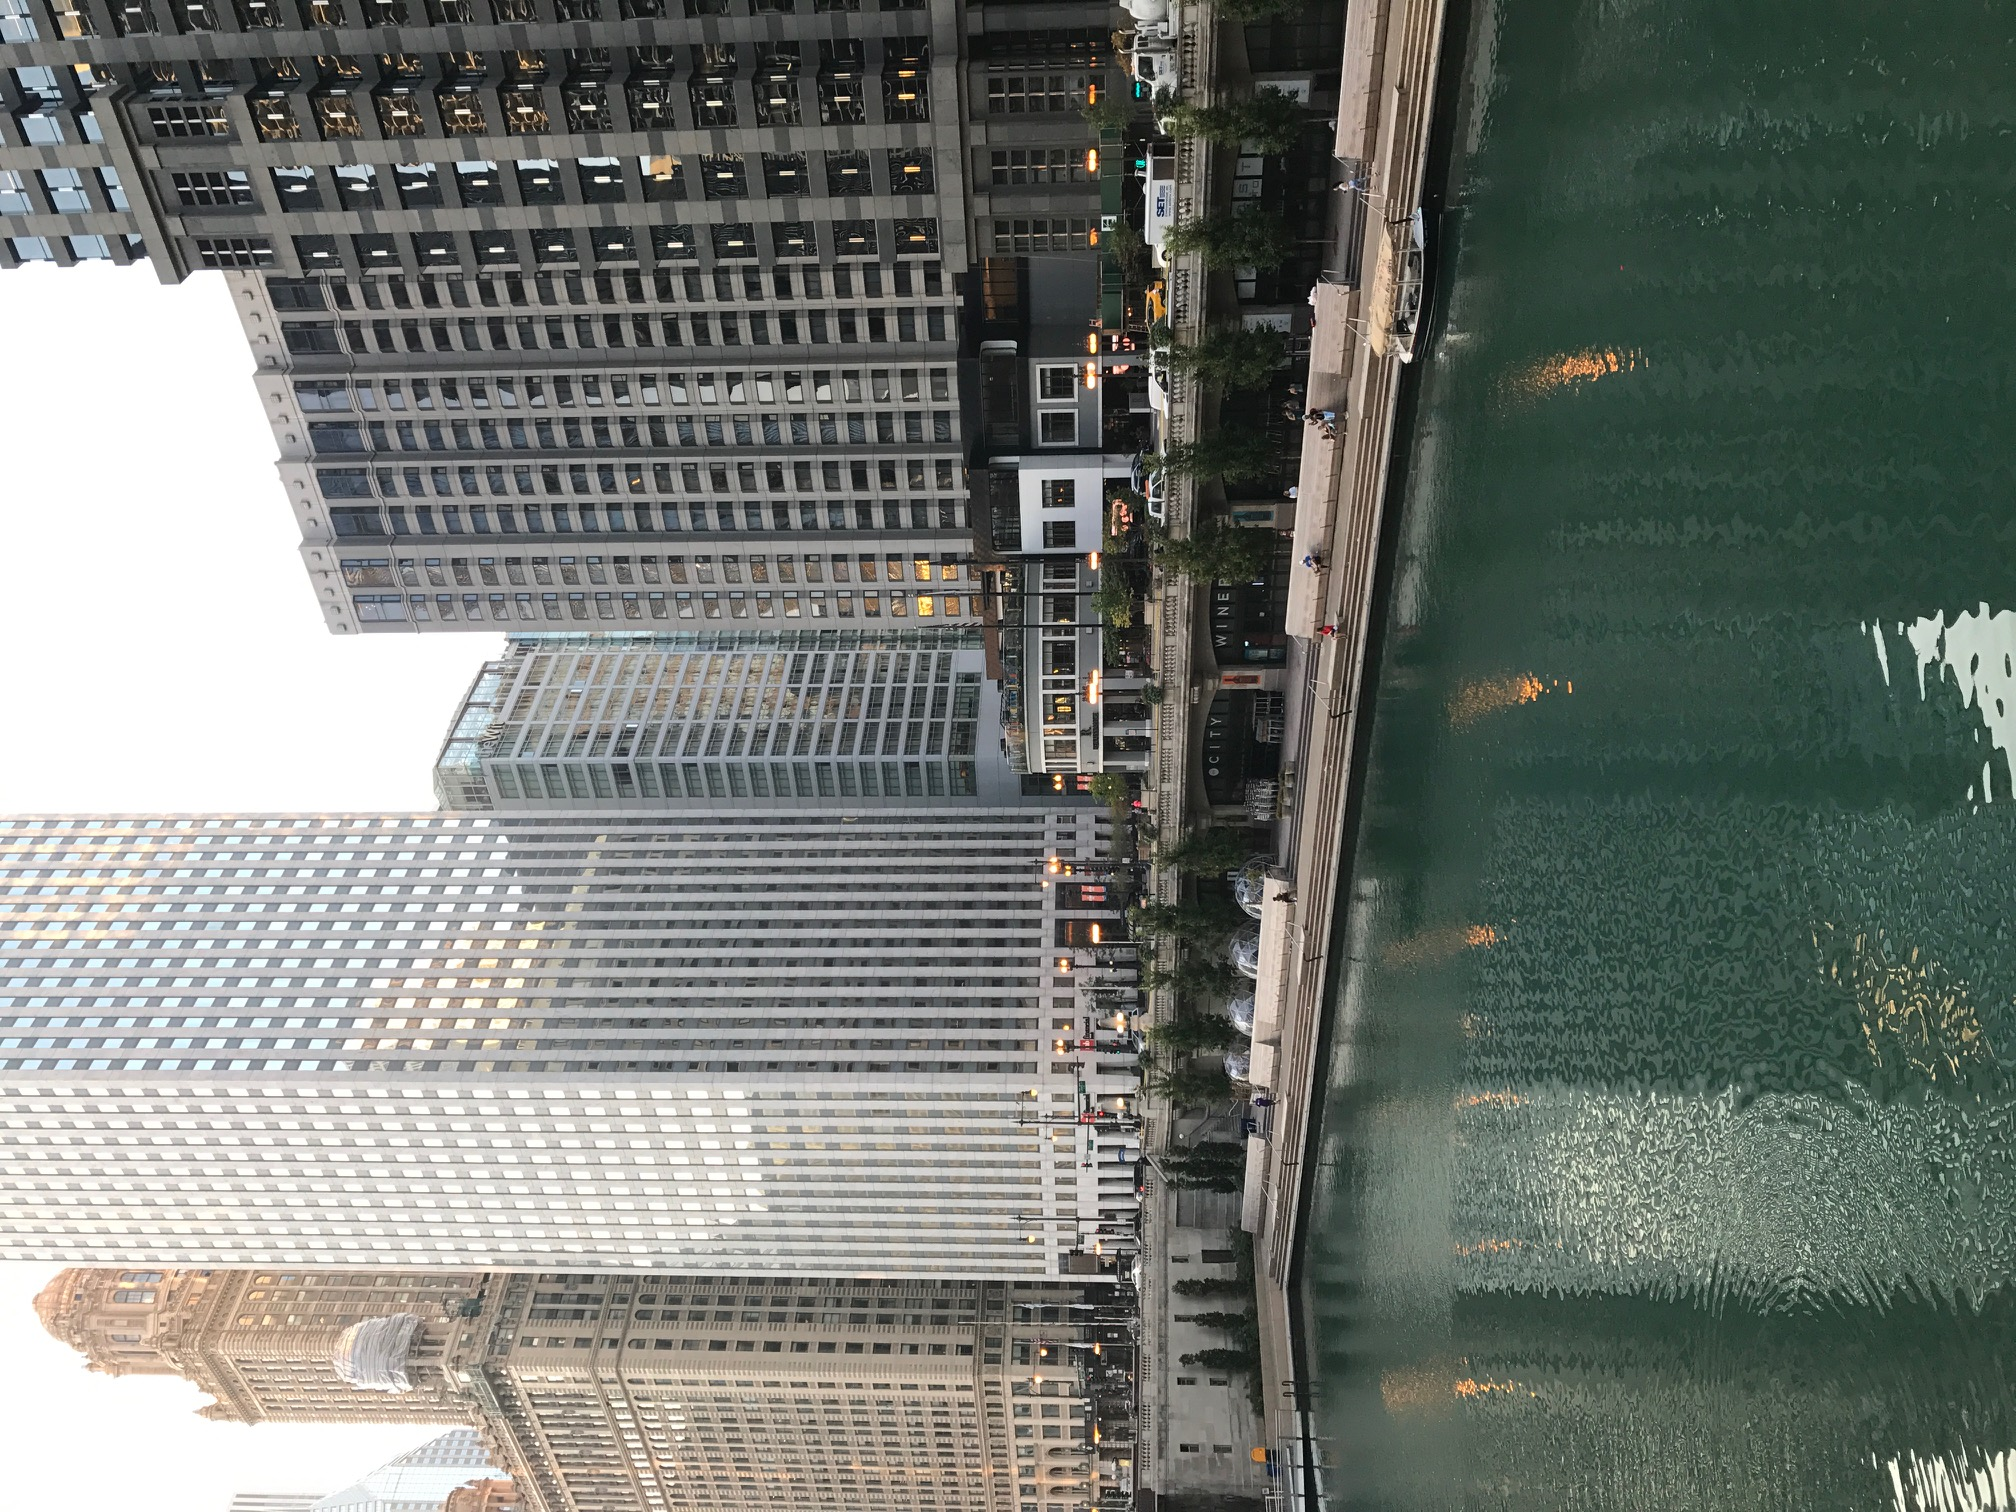 Quiet Morning on the Chicago River